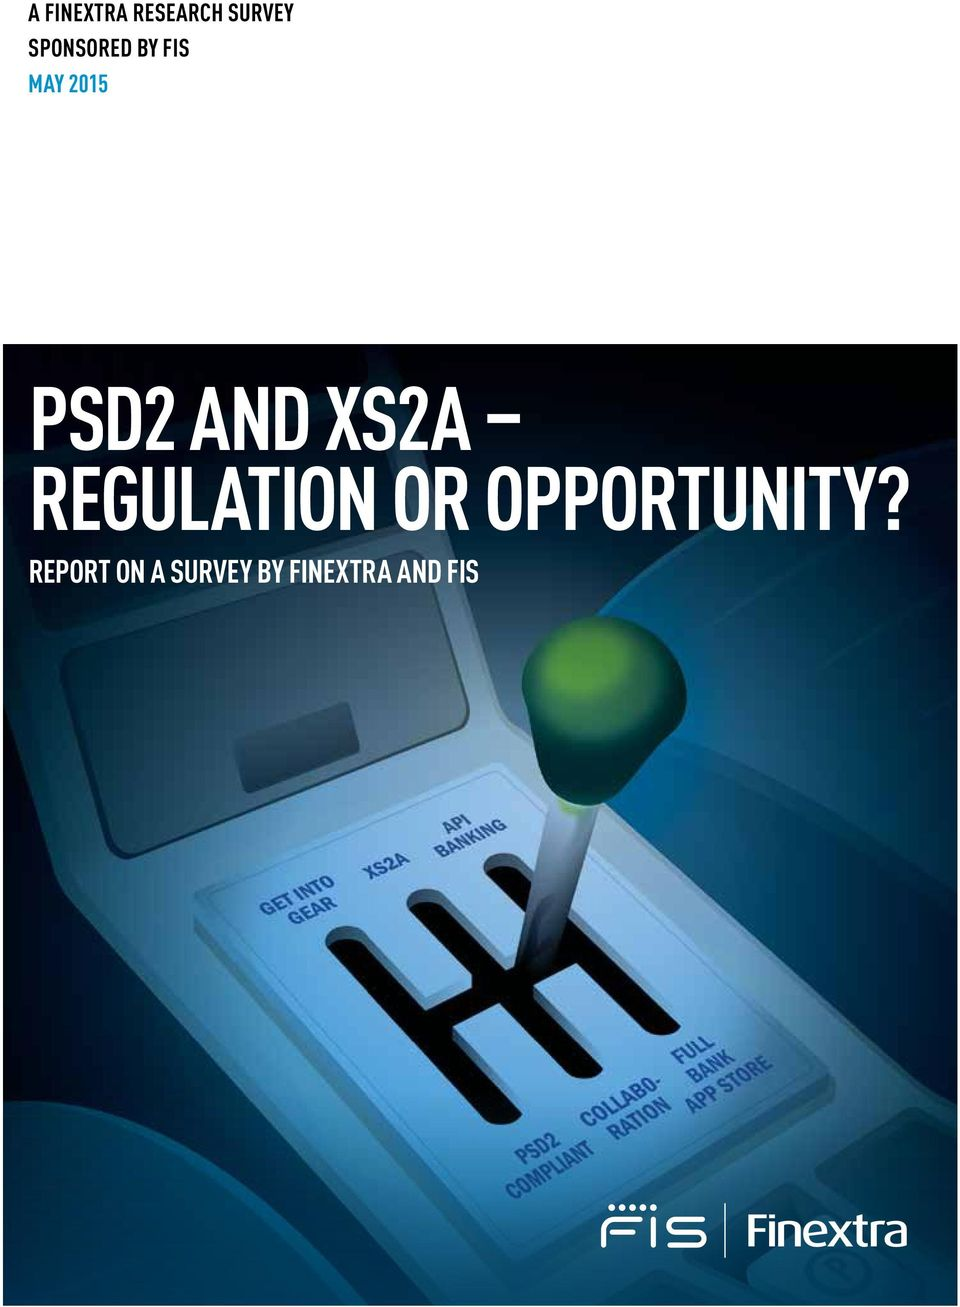 AND XS2A REGULATION OR